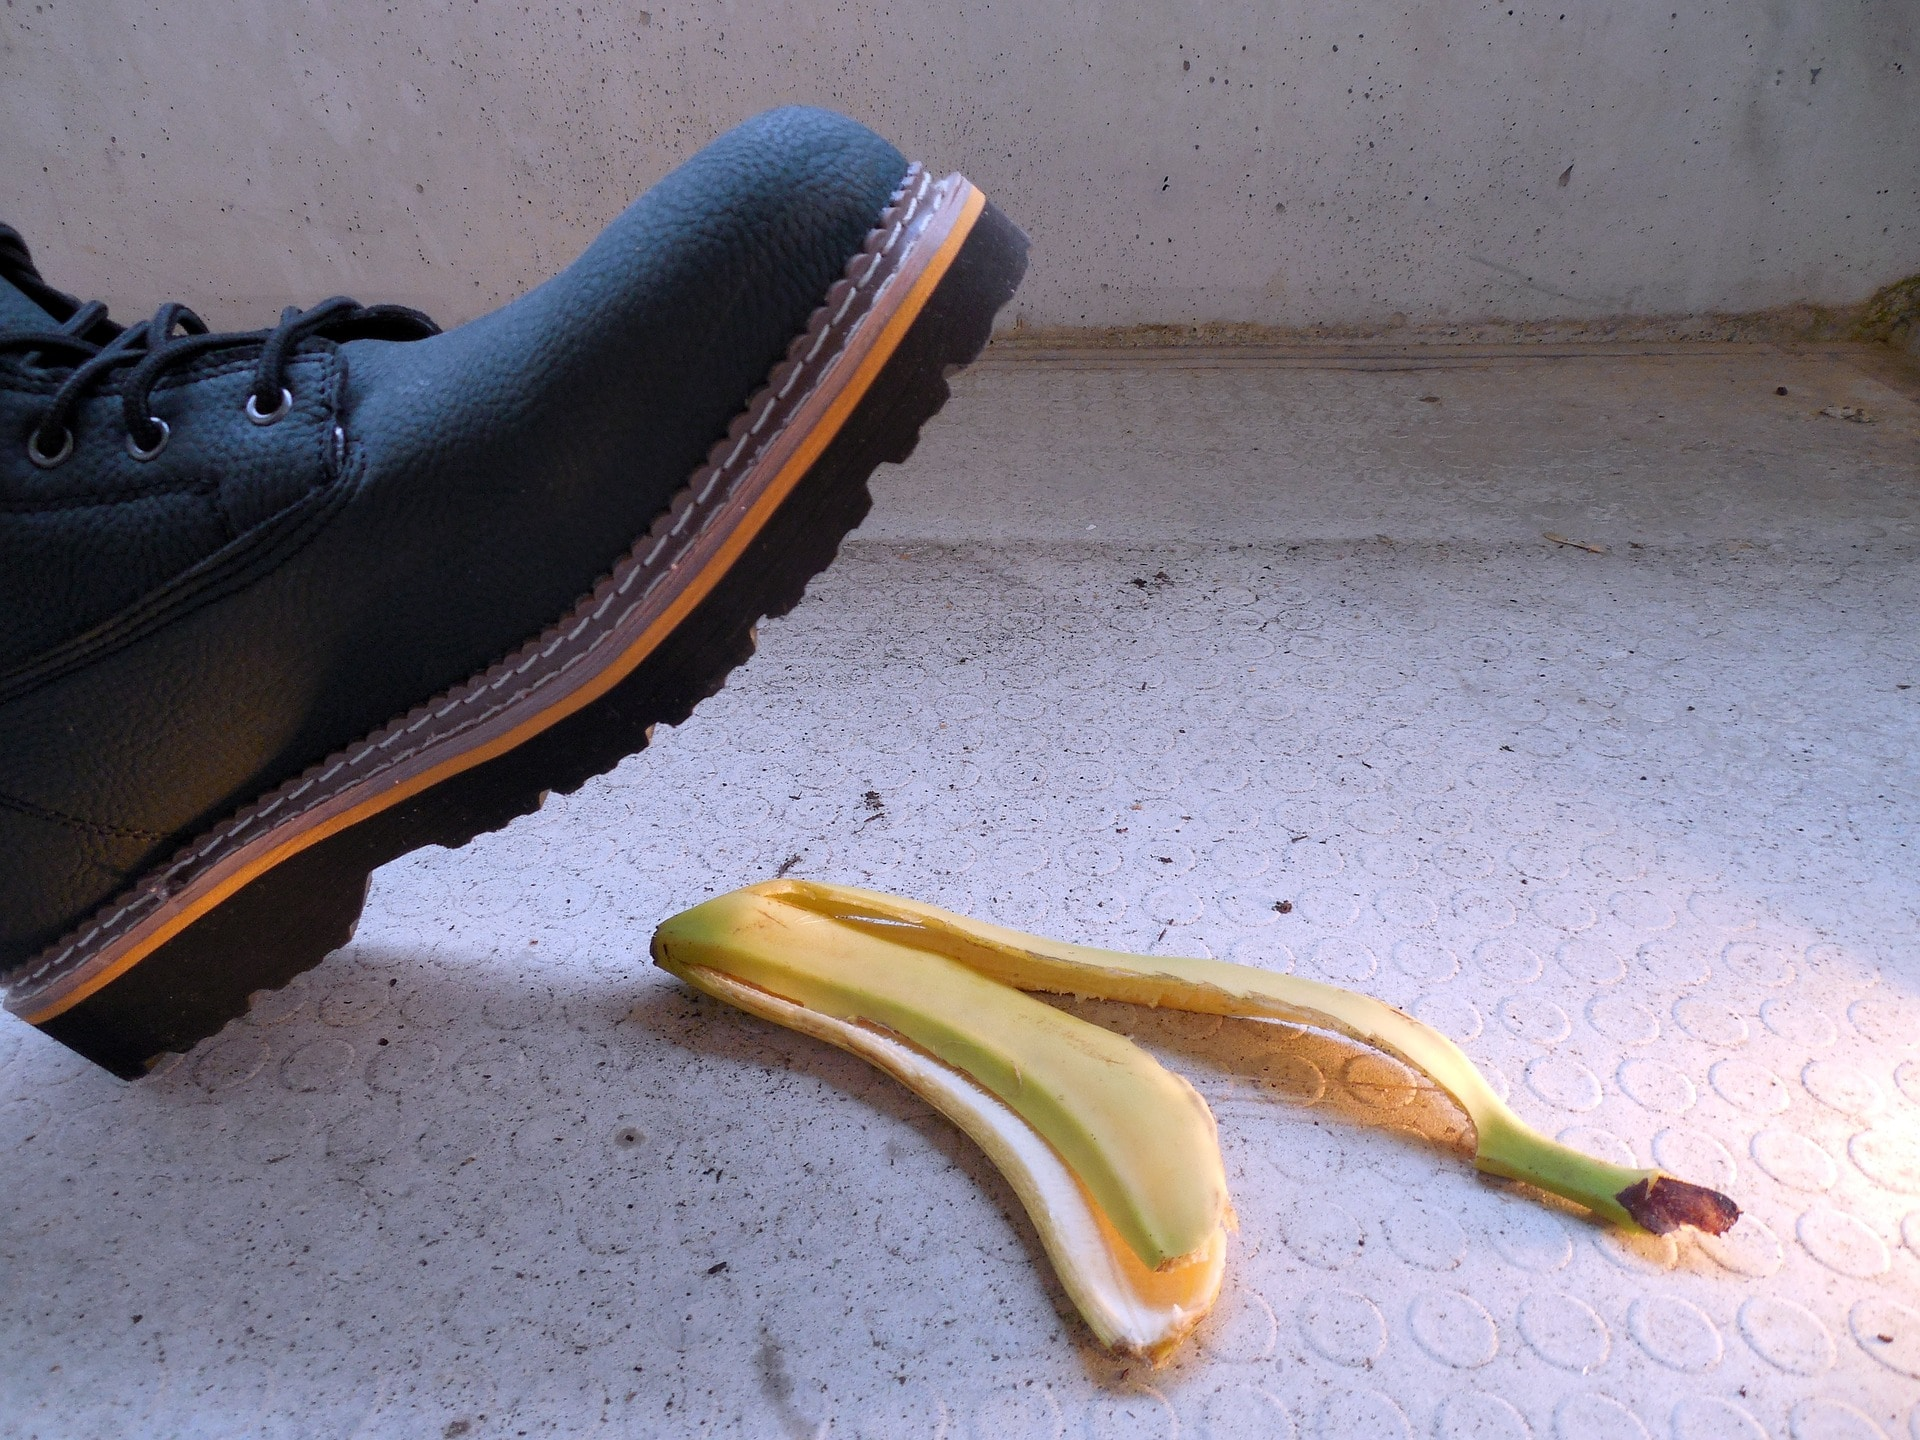 work boot about to step on banana peel